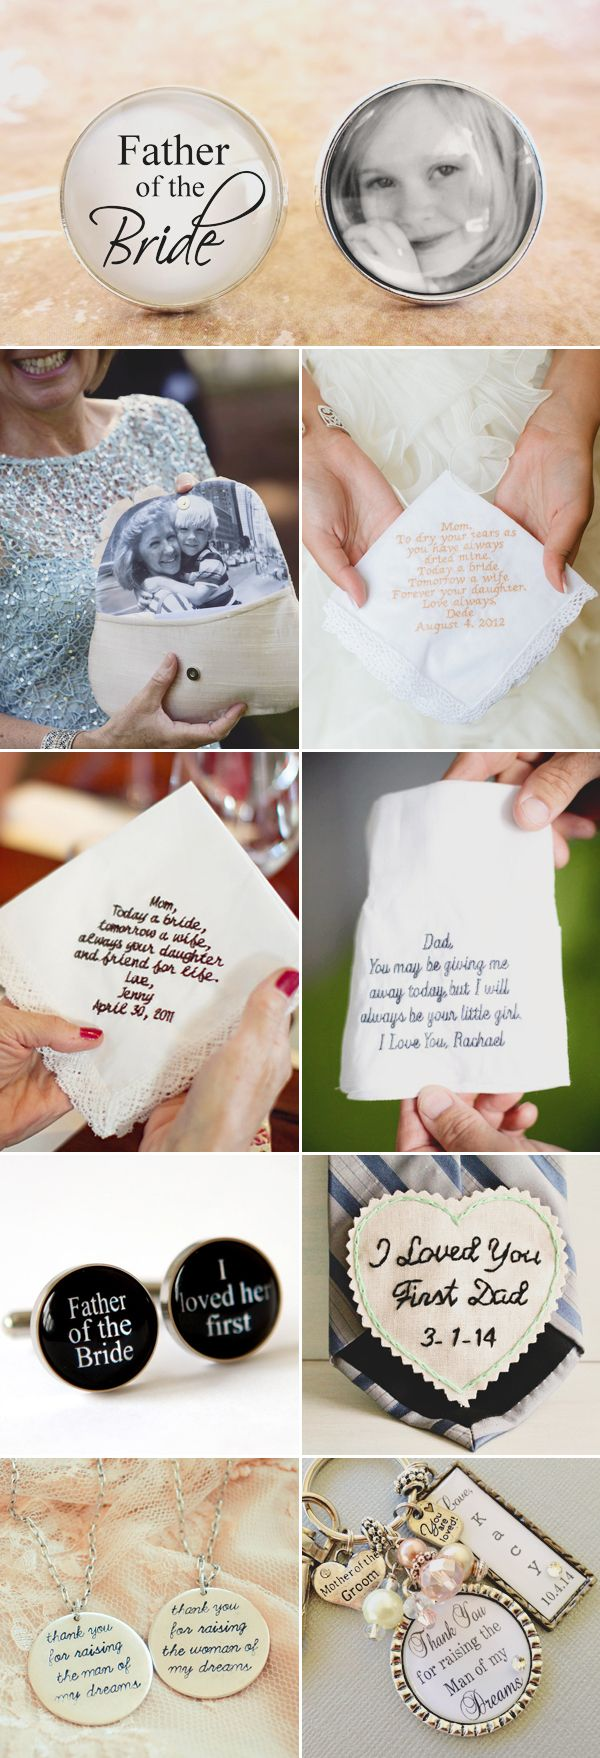 Wedding Gifts For Parents Who Have Everything : Parent Wedding Gifts on Pinterest 25th Anniversary Gifts, Wedding ...